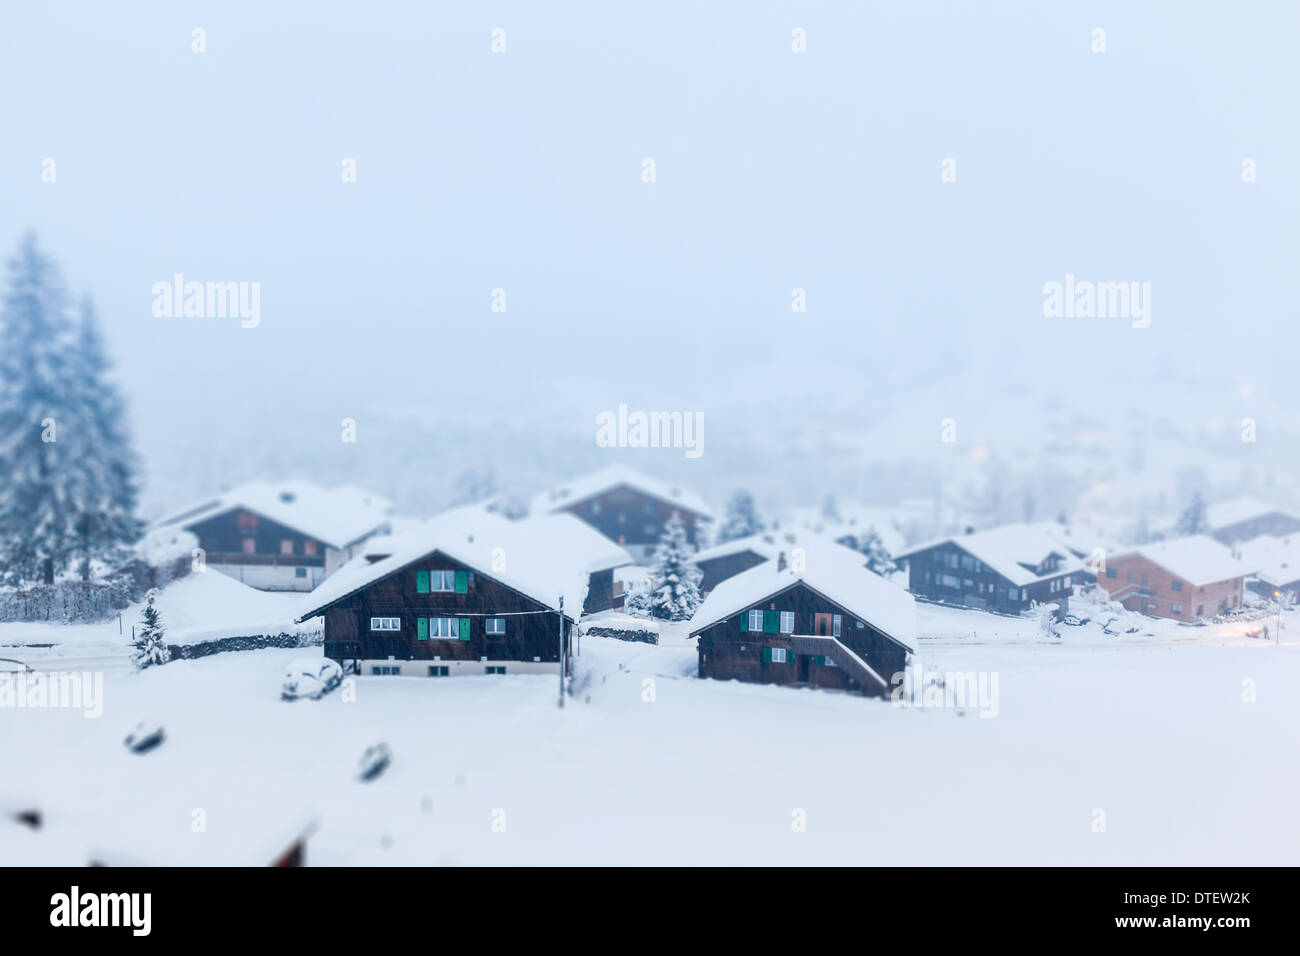 Traditional wooden houses in Grindelwald, Switzerland during heavy snow fall. - Stock Image